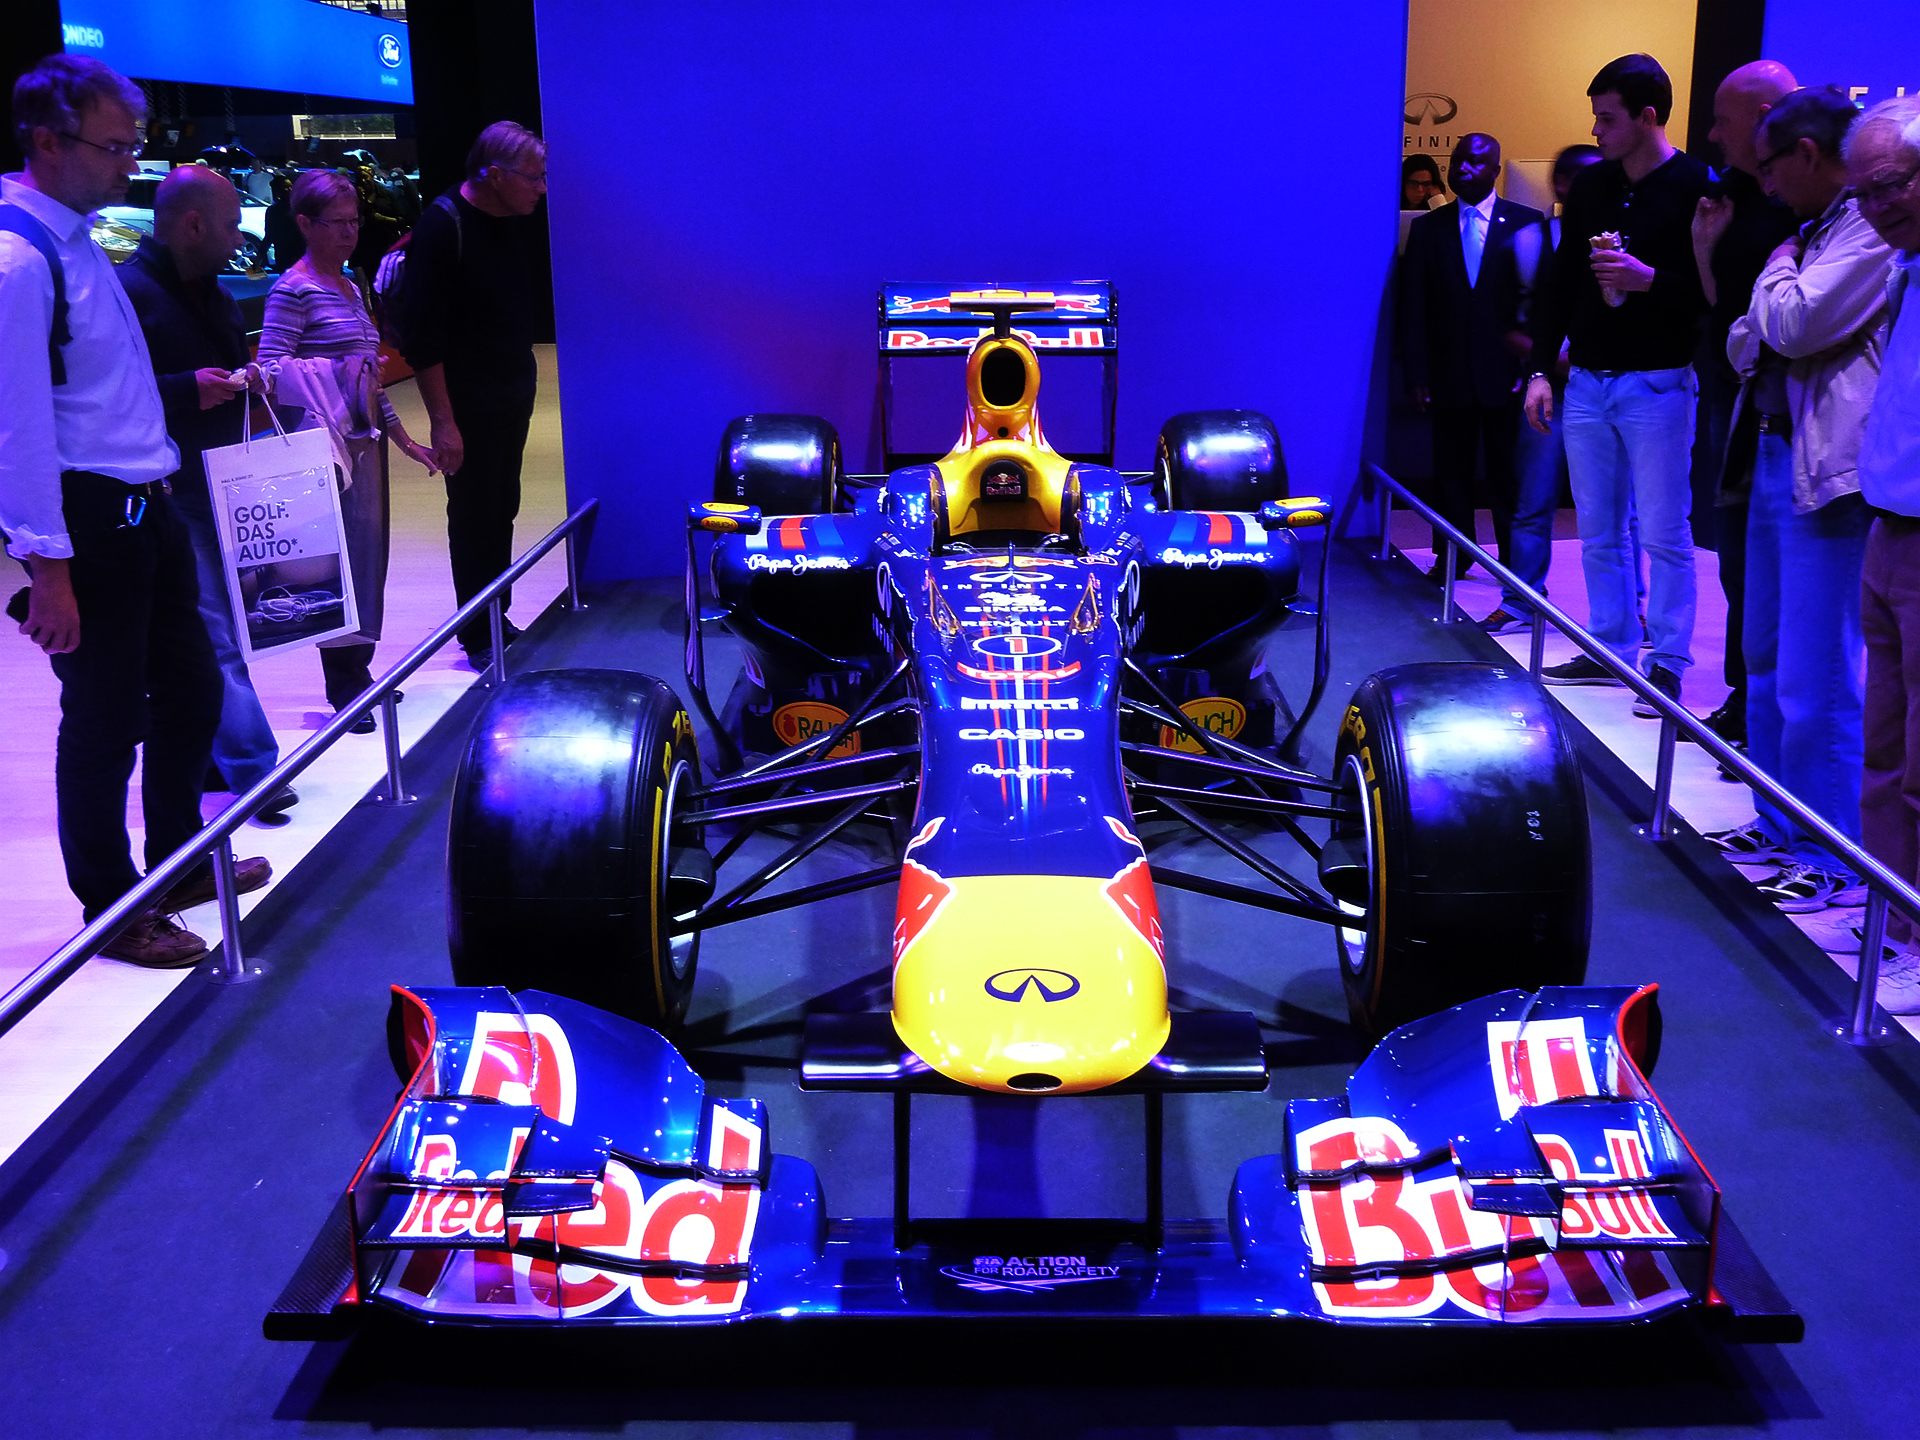 Red-Bull-Racing-F1-2011-front-face-stand-2012-Mondial-Automobile-photo-elj-dm